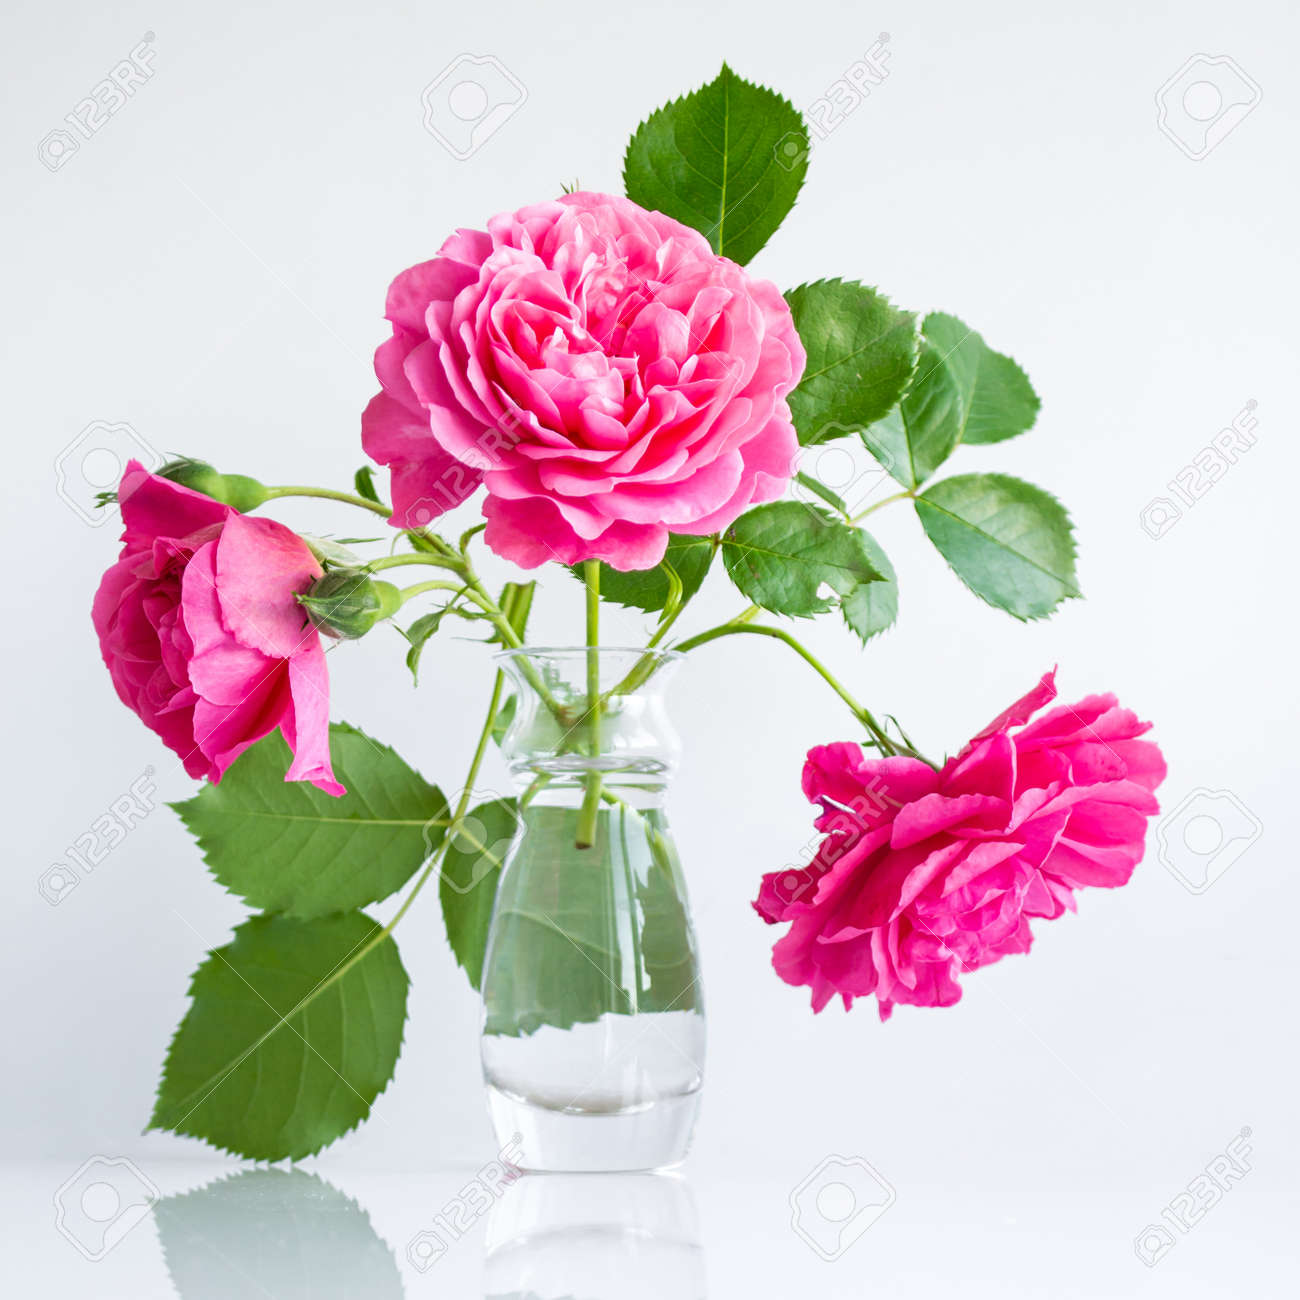 romantic delicate bouquet of pink garden roses on white background - 170431028